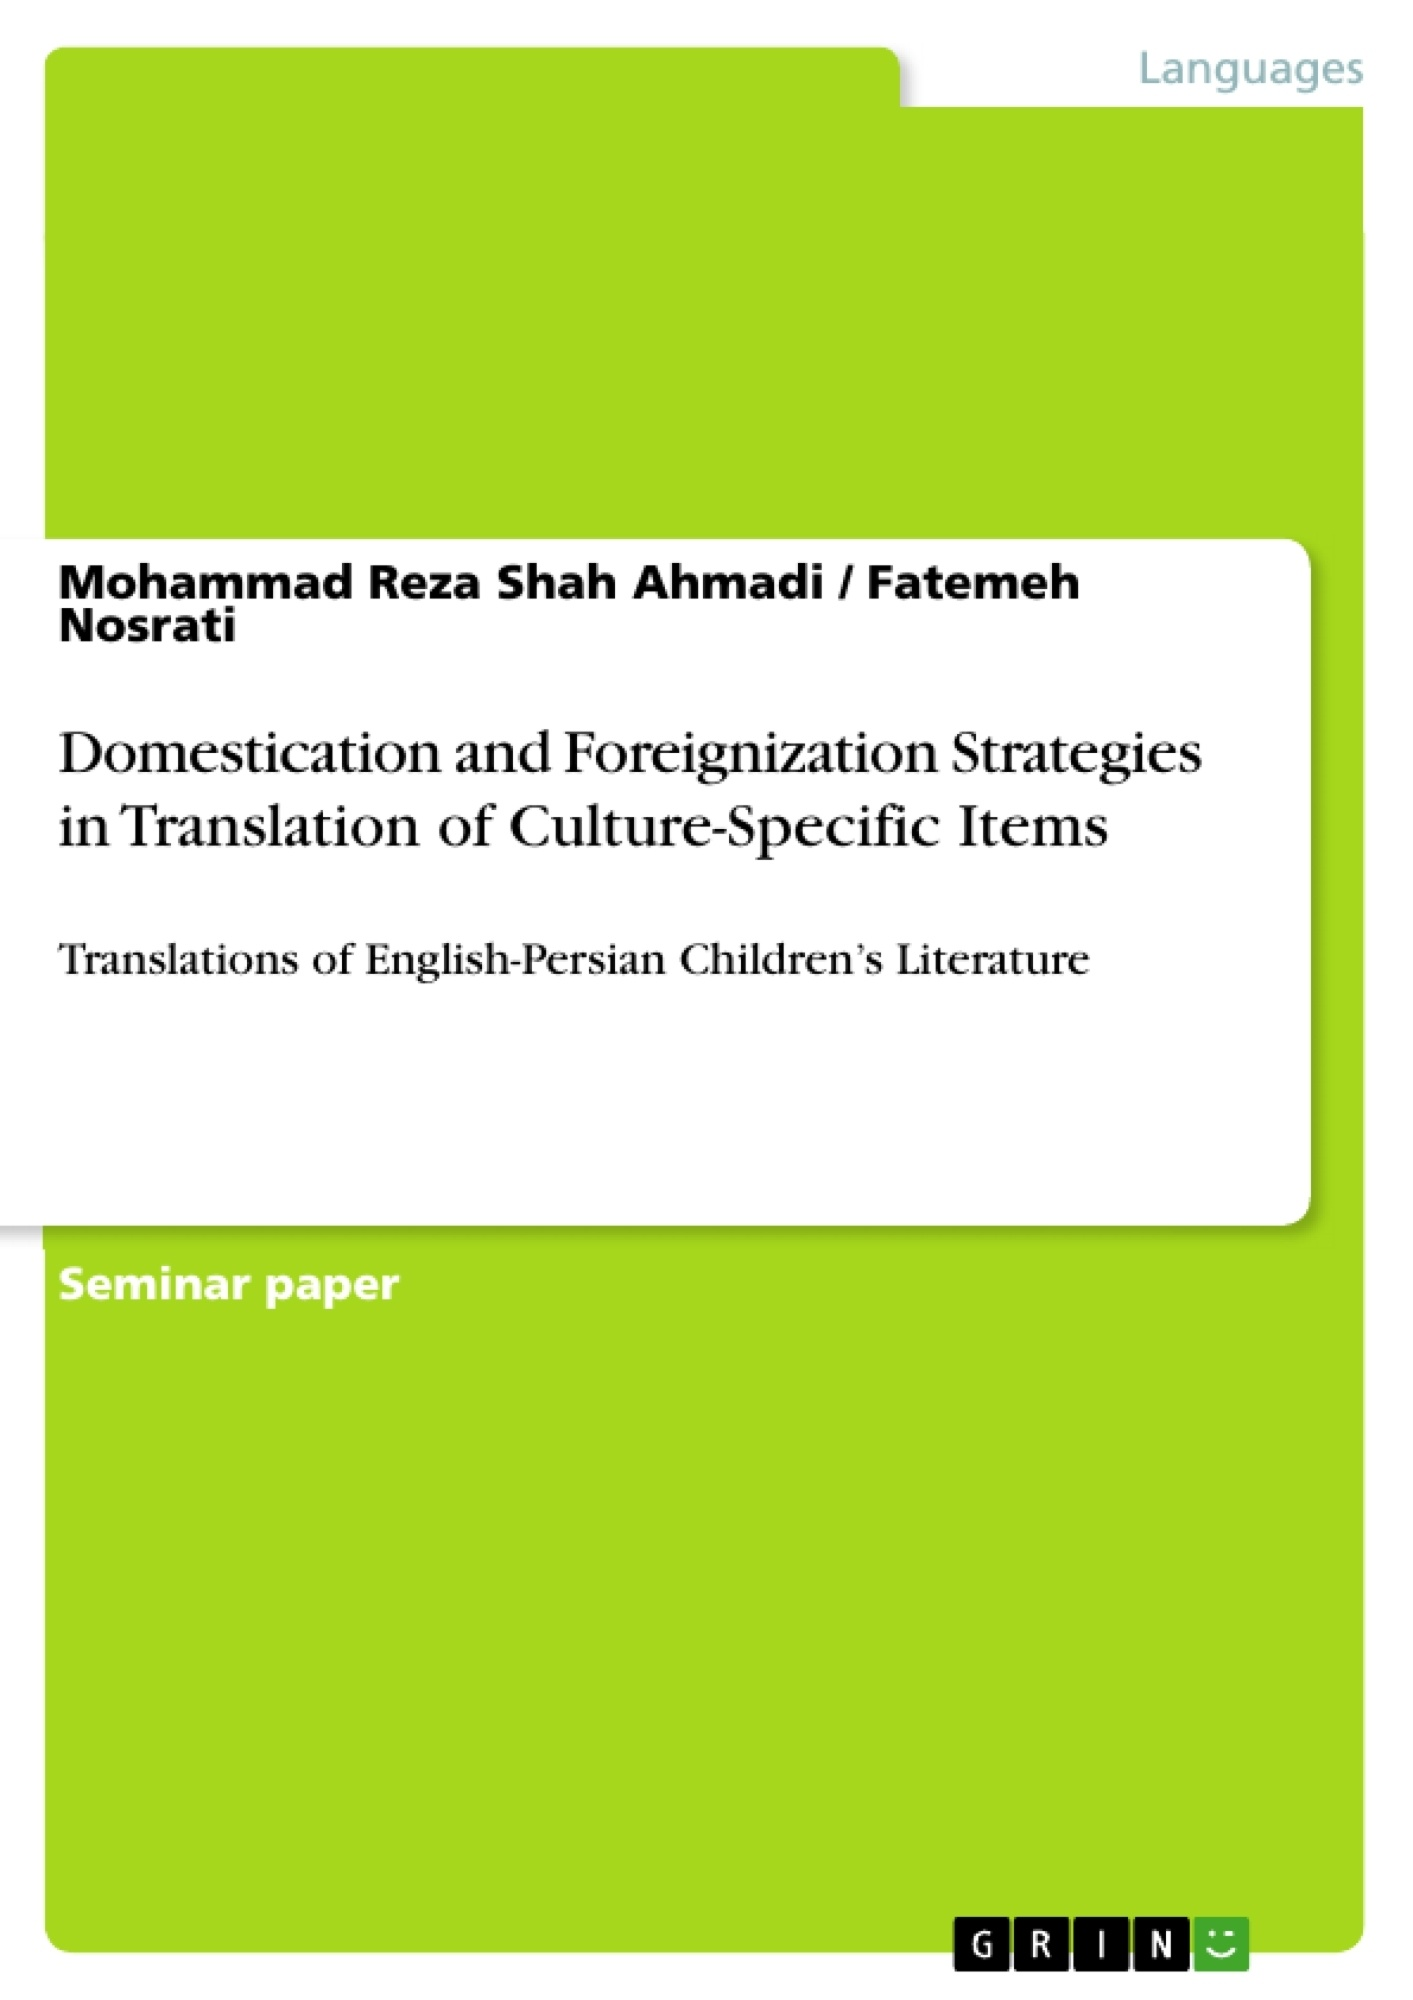 GRIN - Domestication and Foreignization Strategies in Translation of  Culture-Specific Items